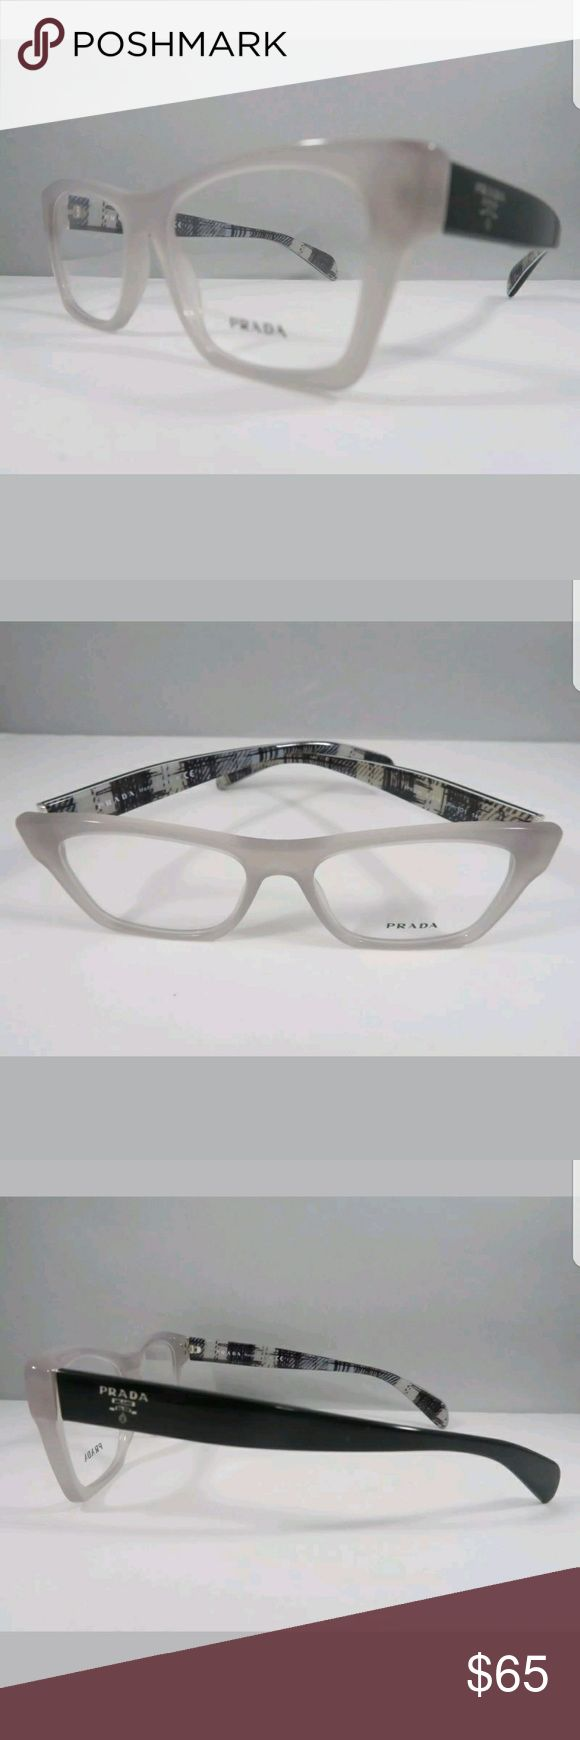 """NEW """"PRADA"""" glasses!! Brand new plastic/metal pair of PRADA eye glasses. Colors in framed are black/beige/plaid. Frames come with a generic hard case. Measurements are 140 temple length, 54 lens length & 40 vertical length. Very nice!! Prada Accessories Glasses"""